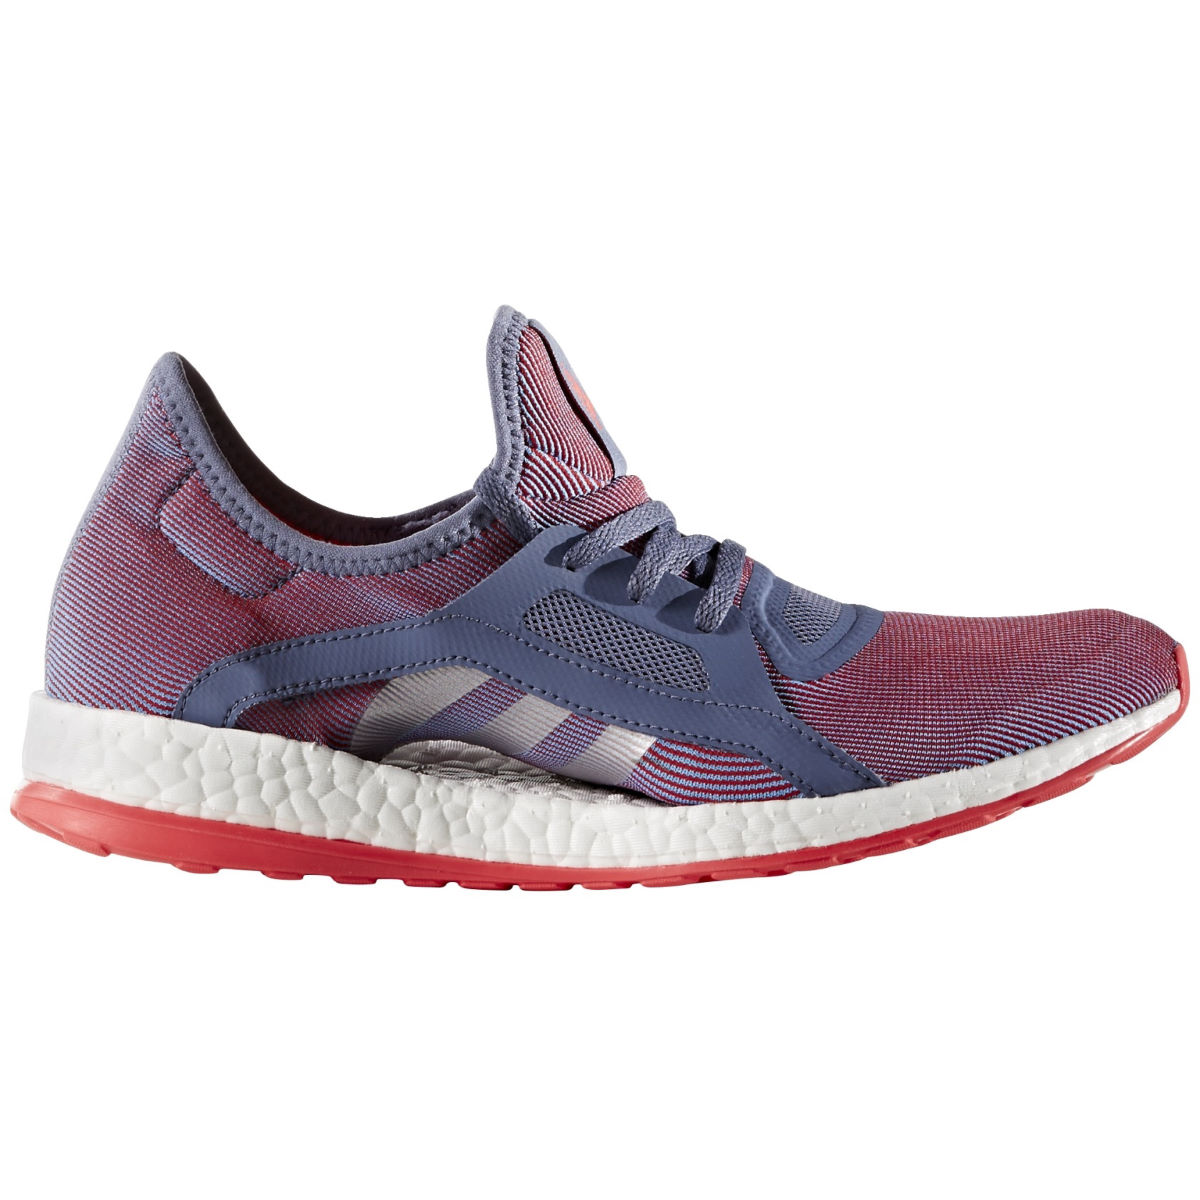 Adidas Womens Pure Boost X Shoes (PurpleRed AW16)   Training Running Shoes